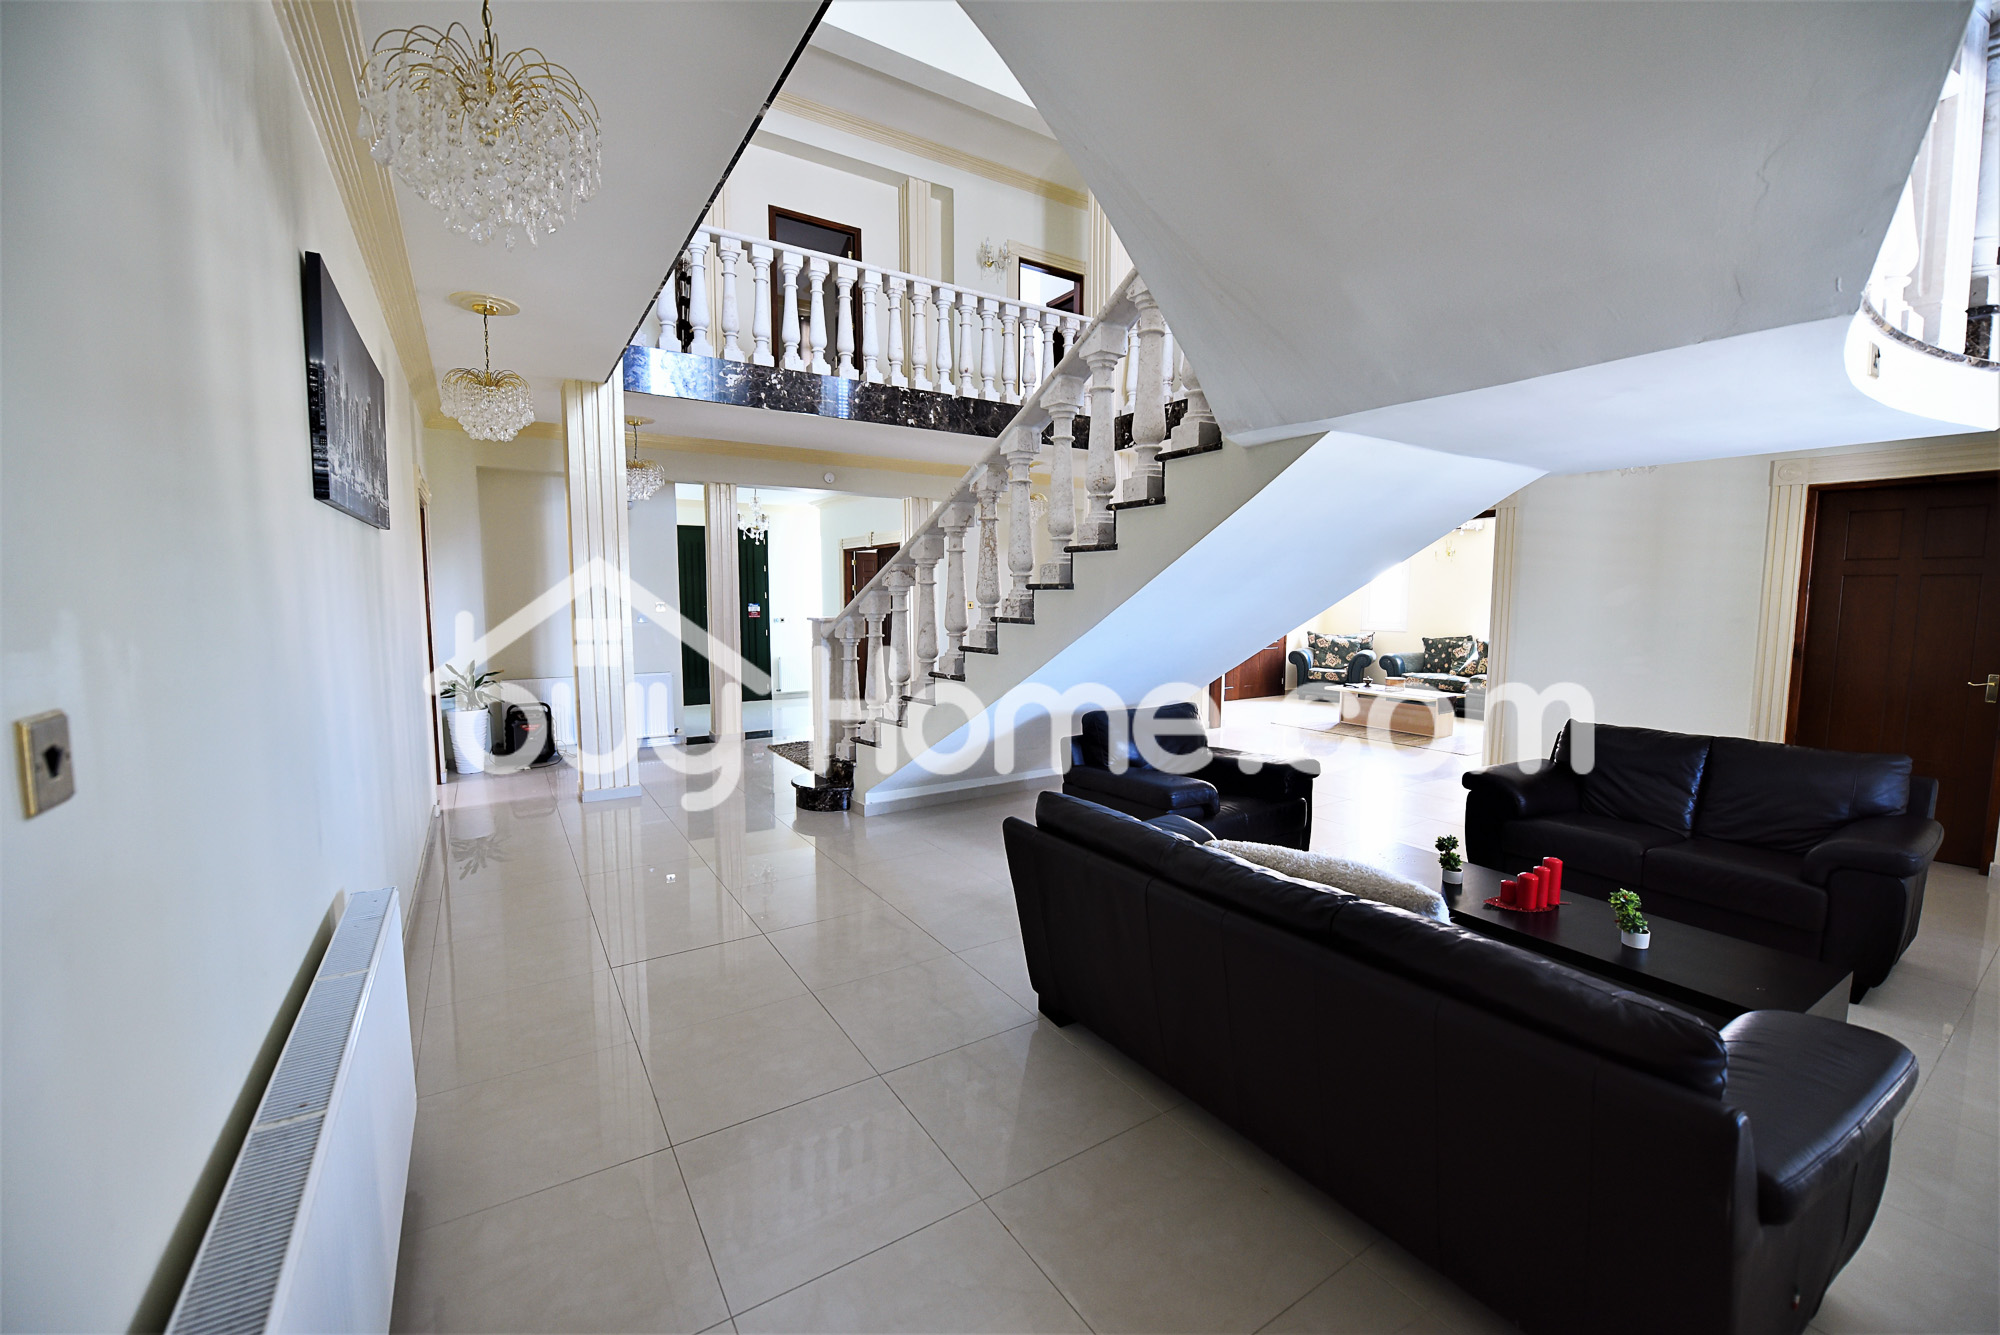 8 Bedroom Mansion | BuyHome